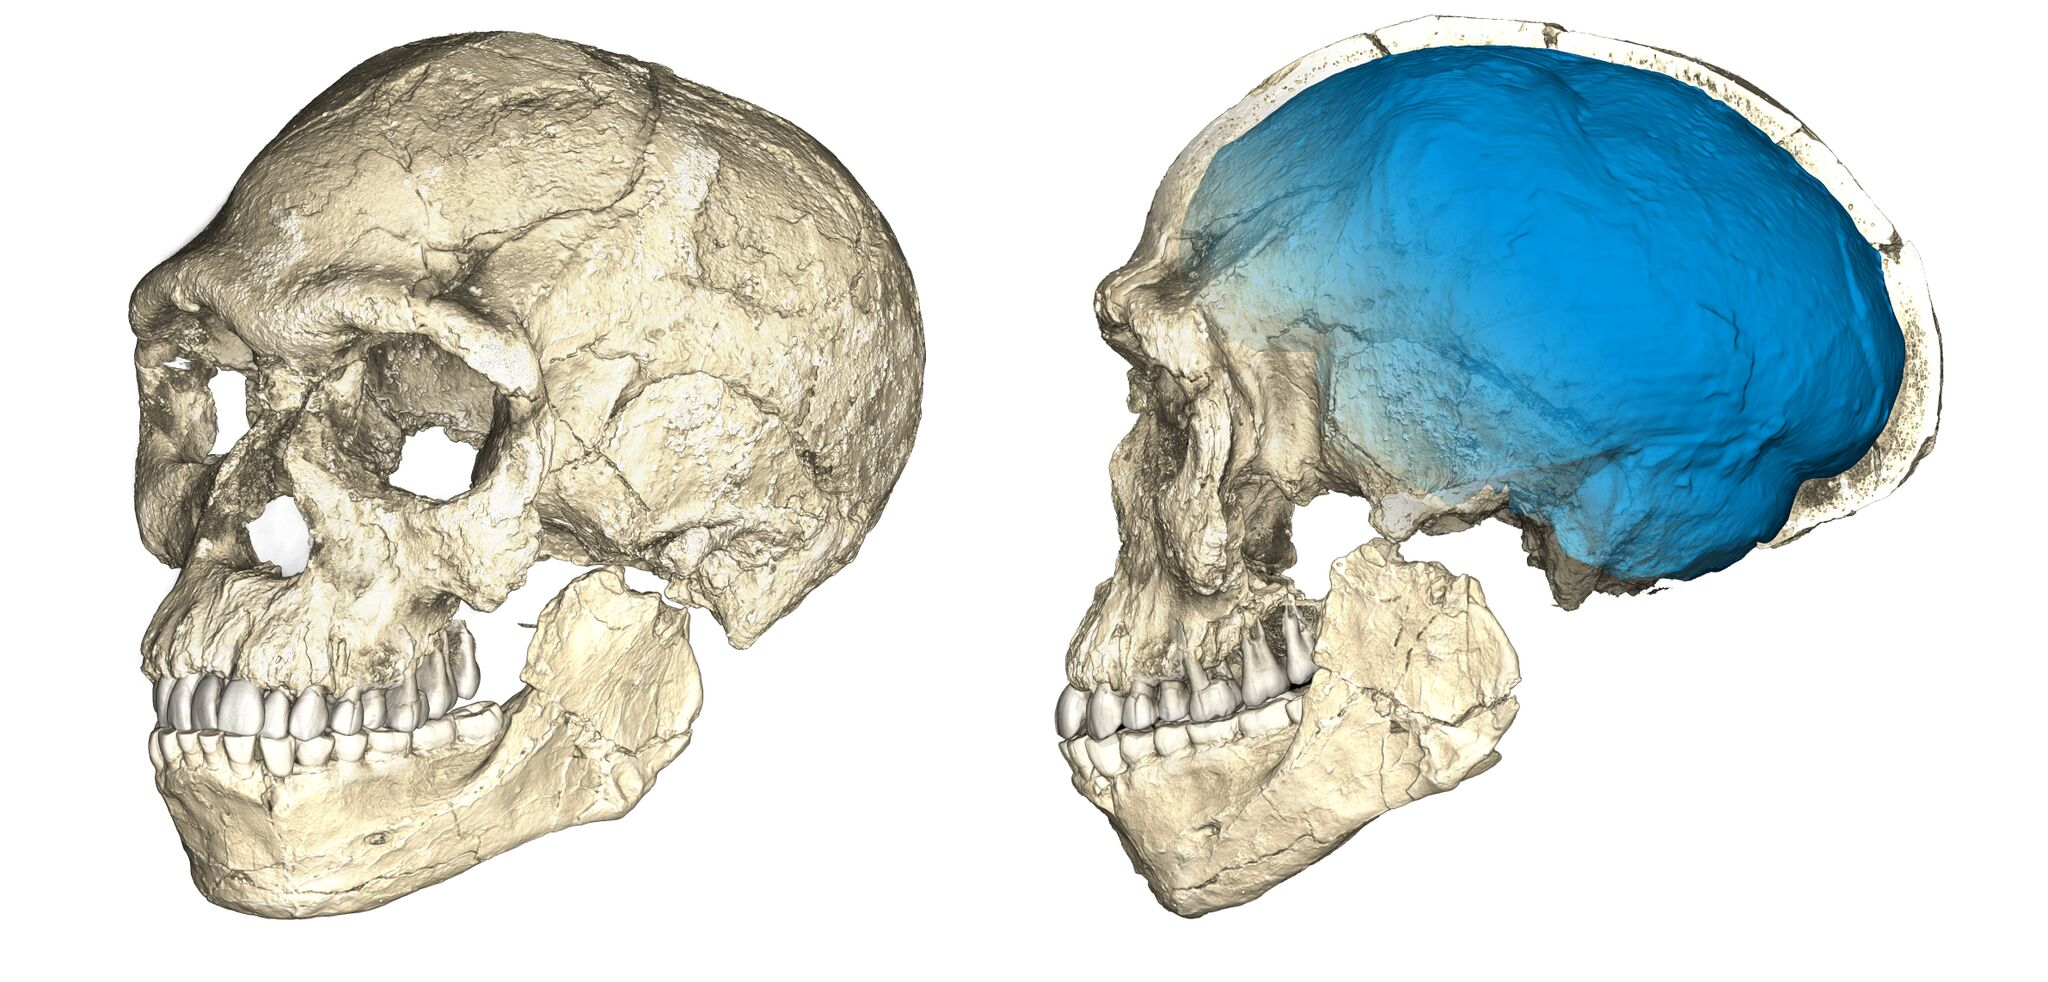 Two views of a composite reconstruction of the earliest known Homo sapiens fossils from Jebel Irhoud (Morocco) based on micro computed tomographic scans of multiple original fossils. Graphic by Philipp Gunz, MPI EVA Leipzig